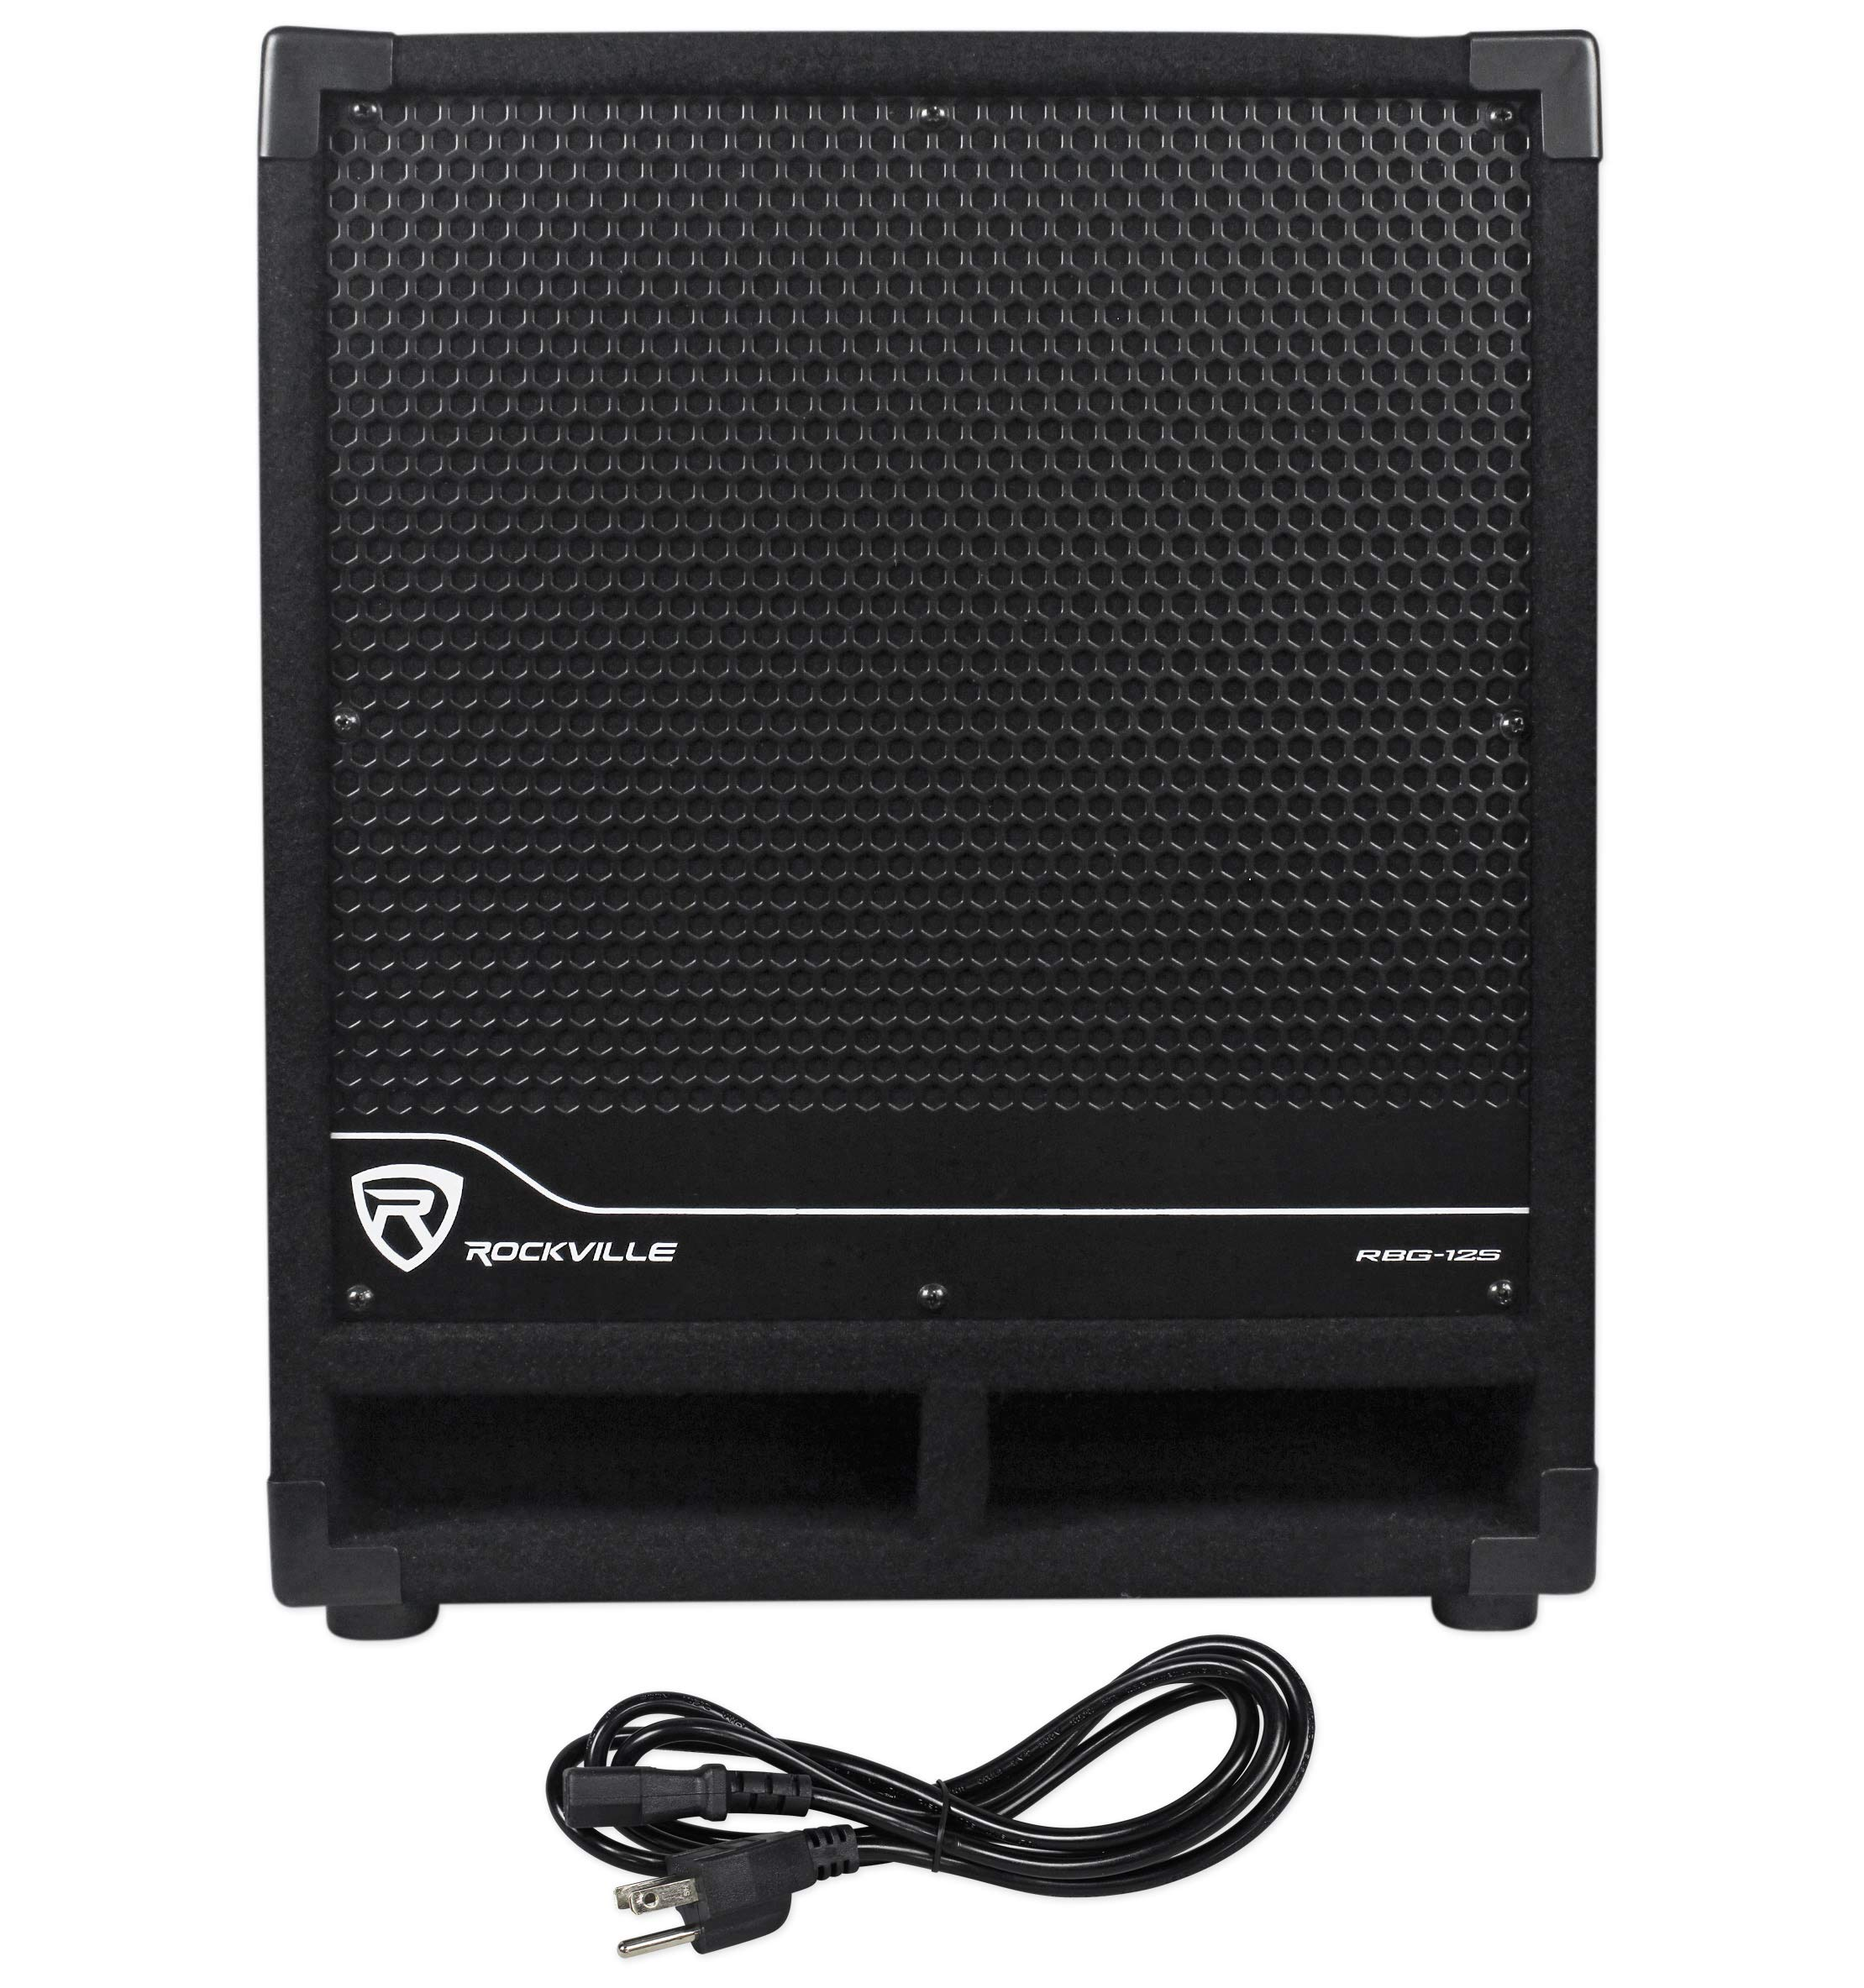 New Rockville RBG12S 12'' 1400w Powered Subwoofer Sub for Church Sound Systems by Rockville